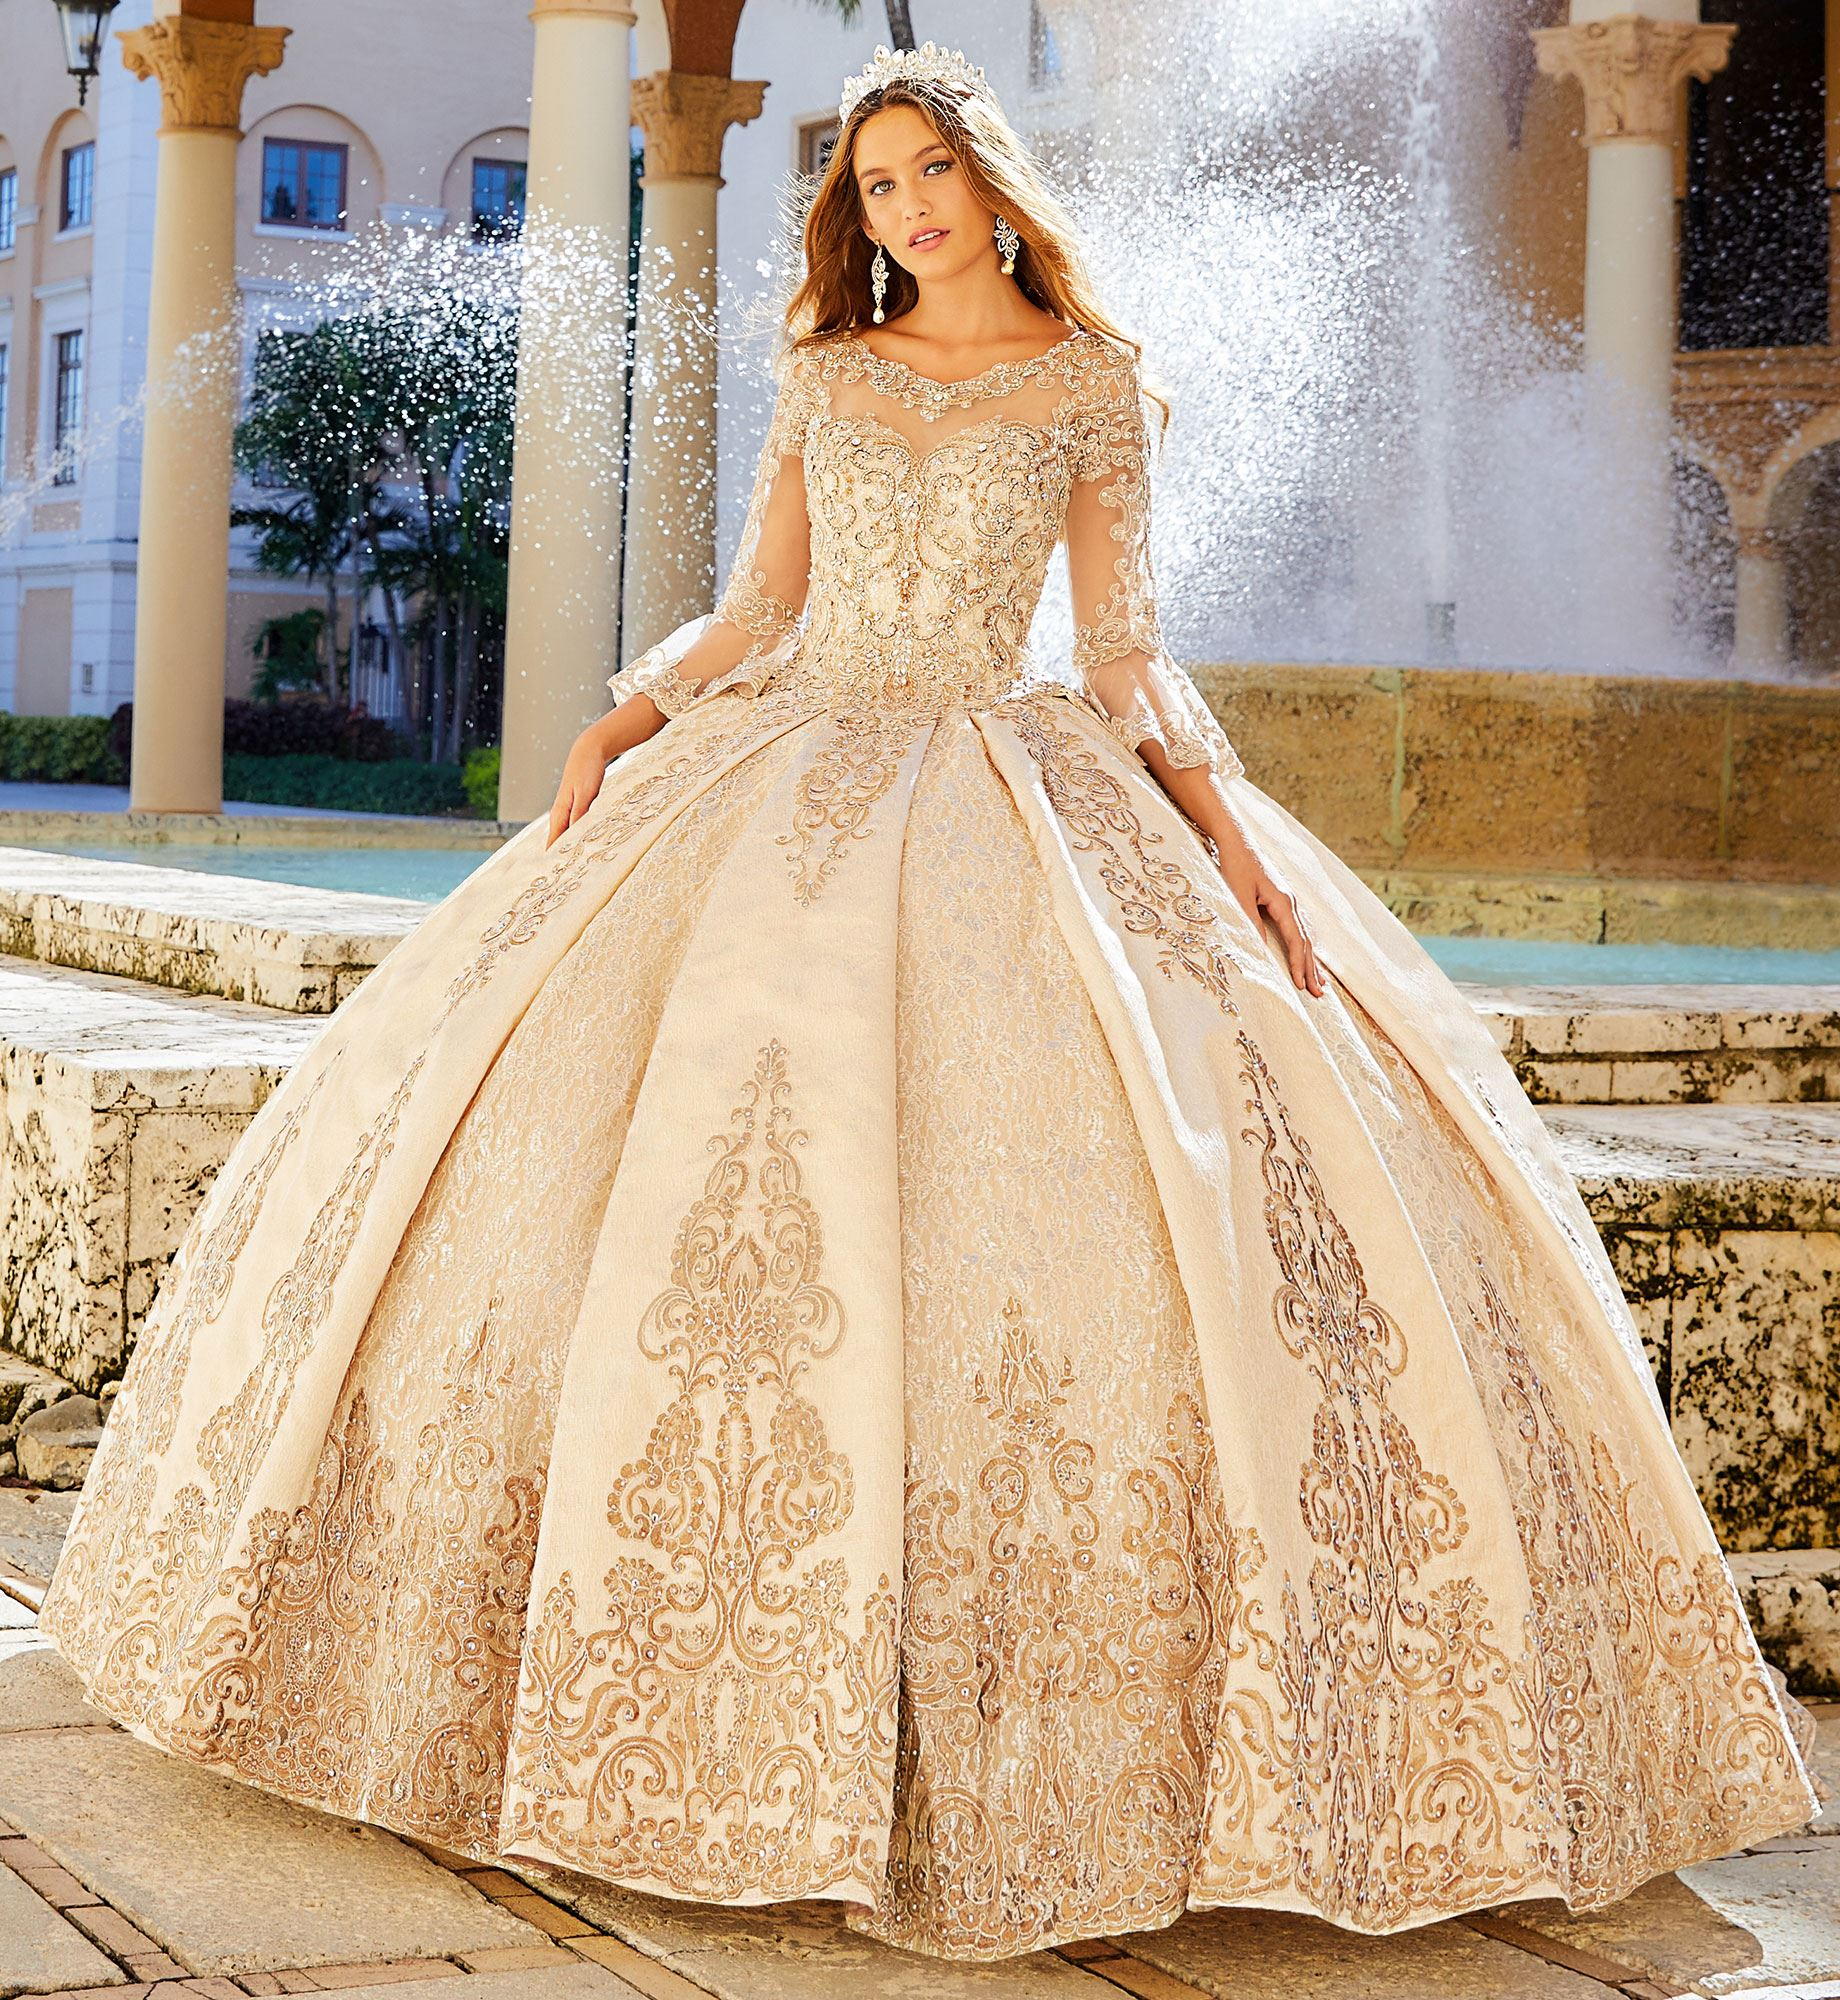 Brunette model in long sleeve sparkly gold quinceañera dress